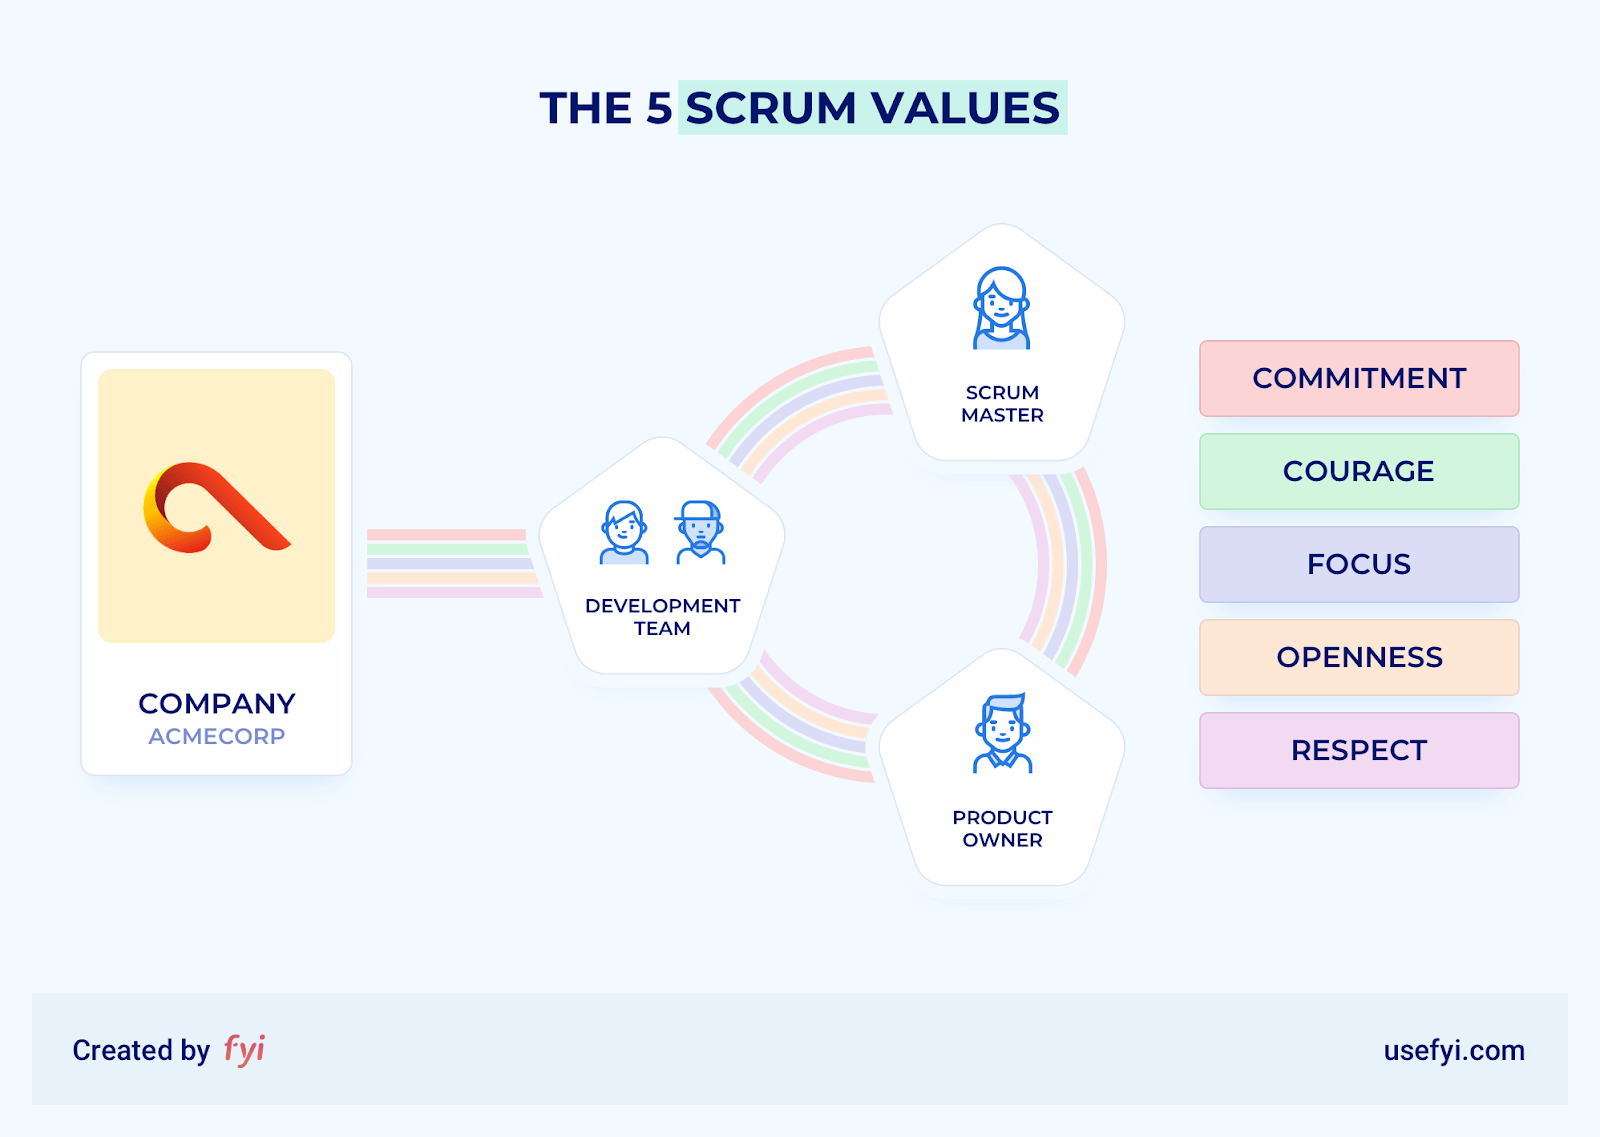 illustration of scrum values and scrum team structure